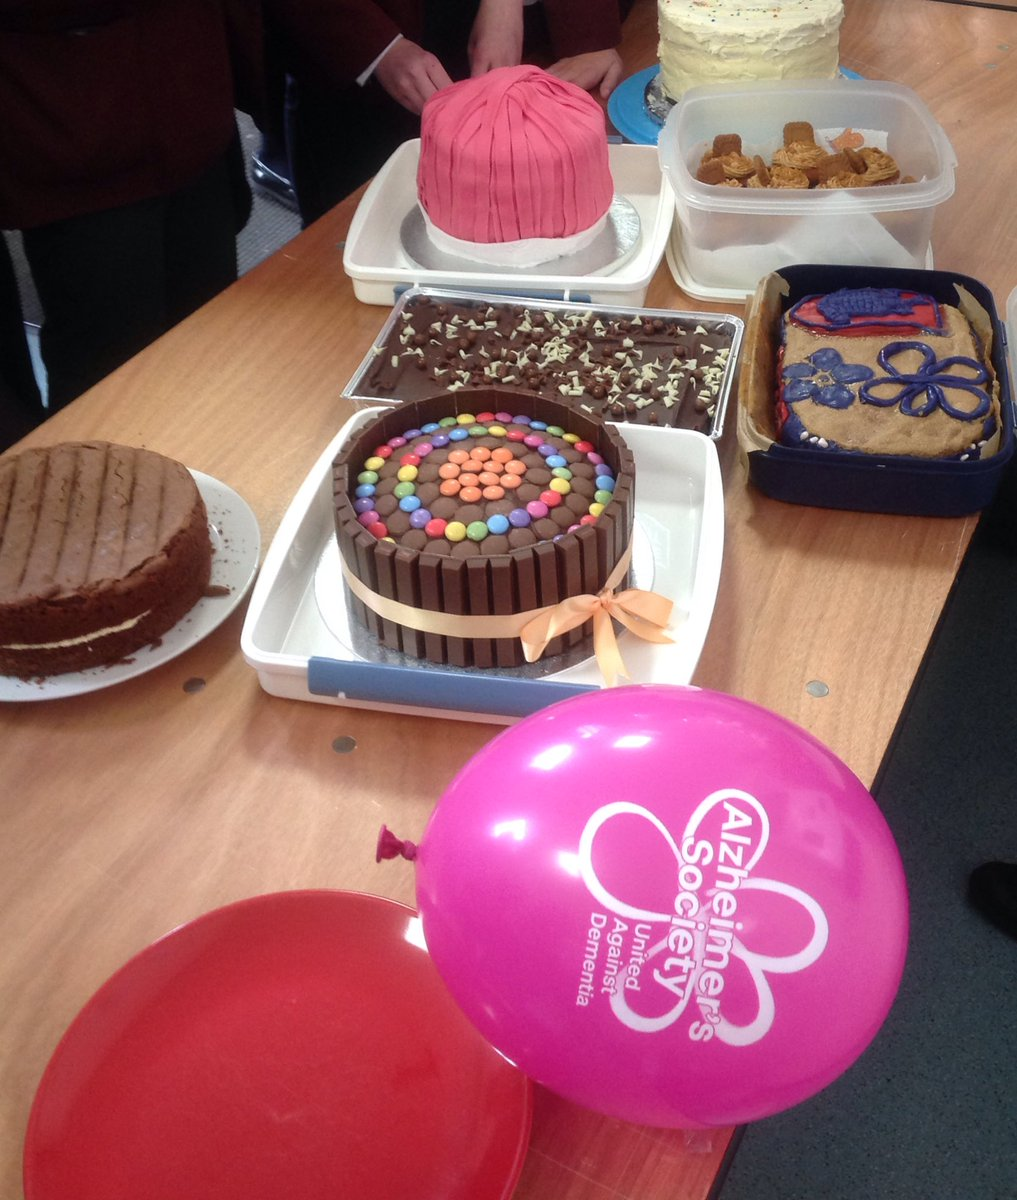 Fantastic cake sale on Friday following...